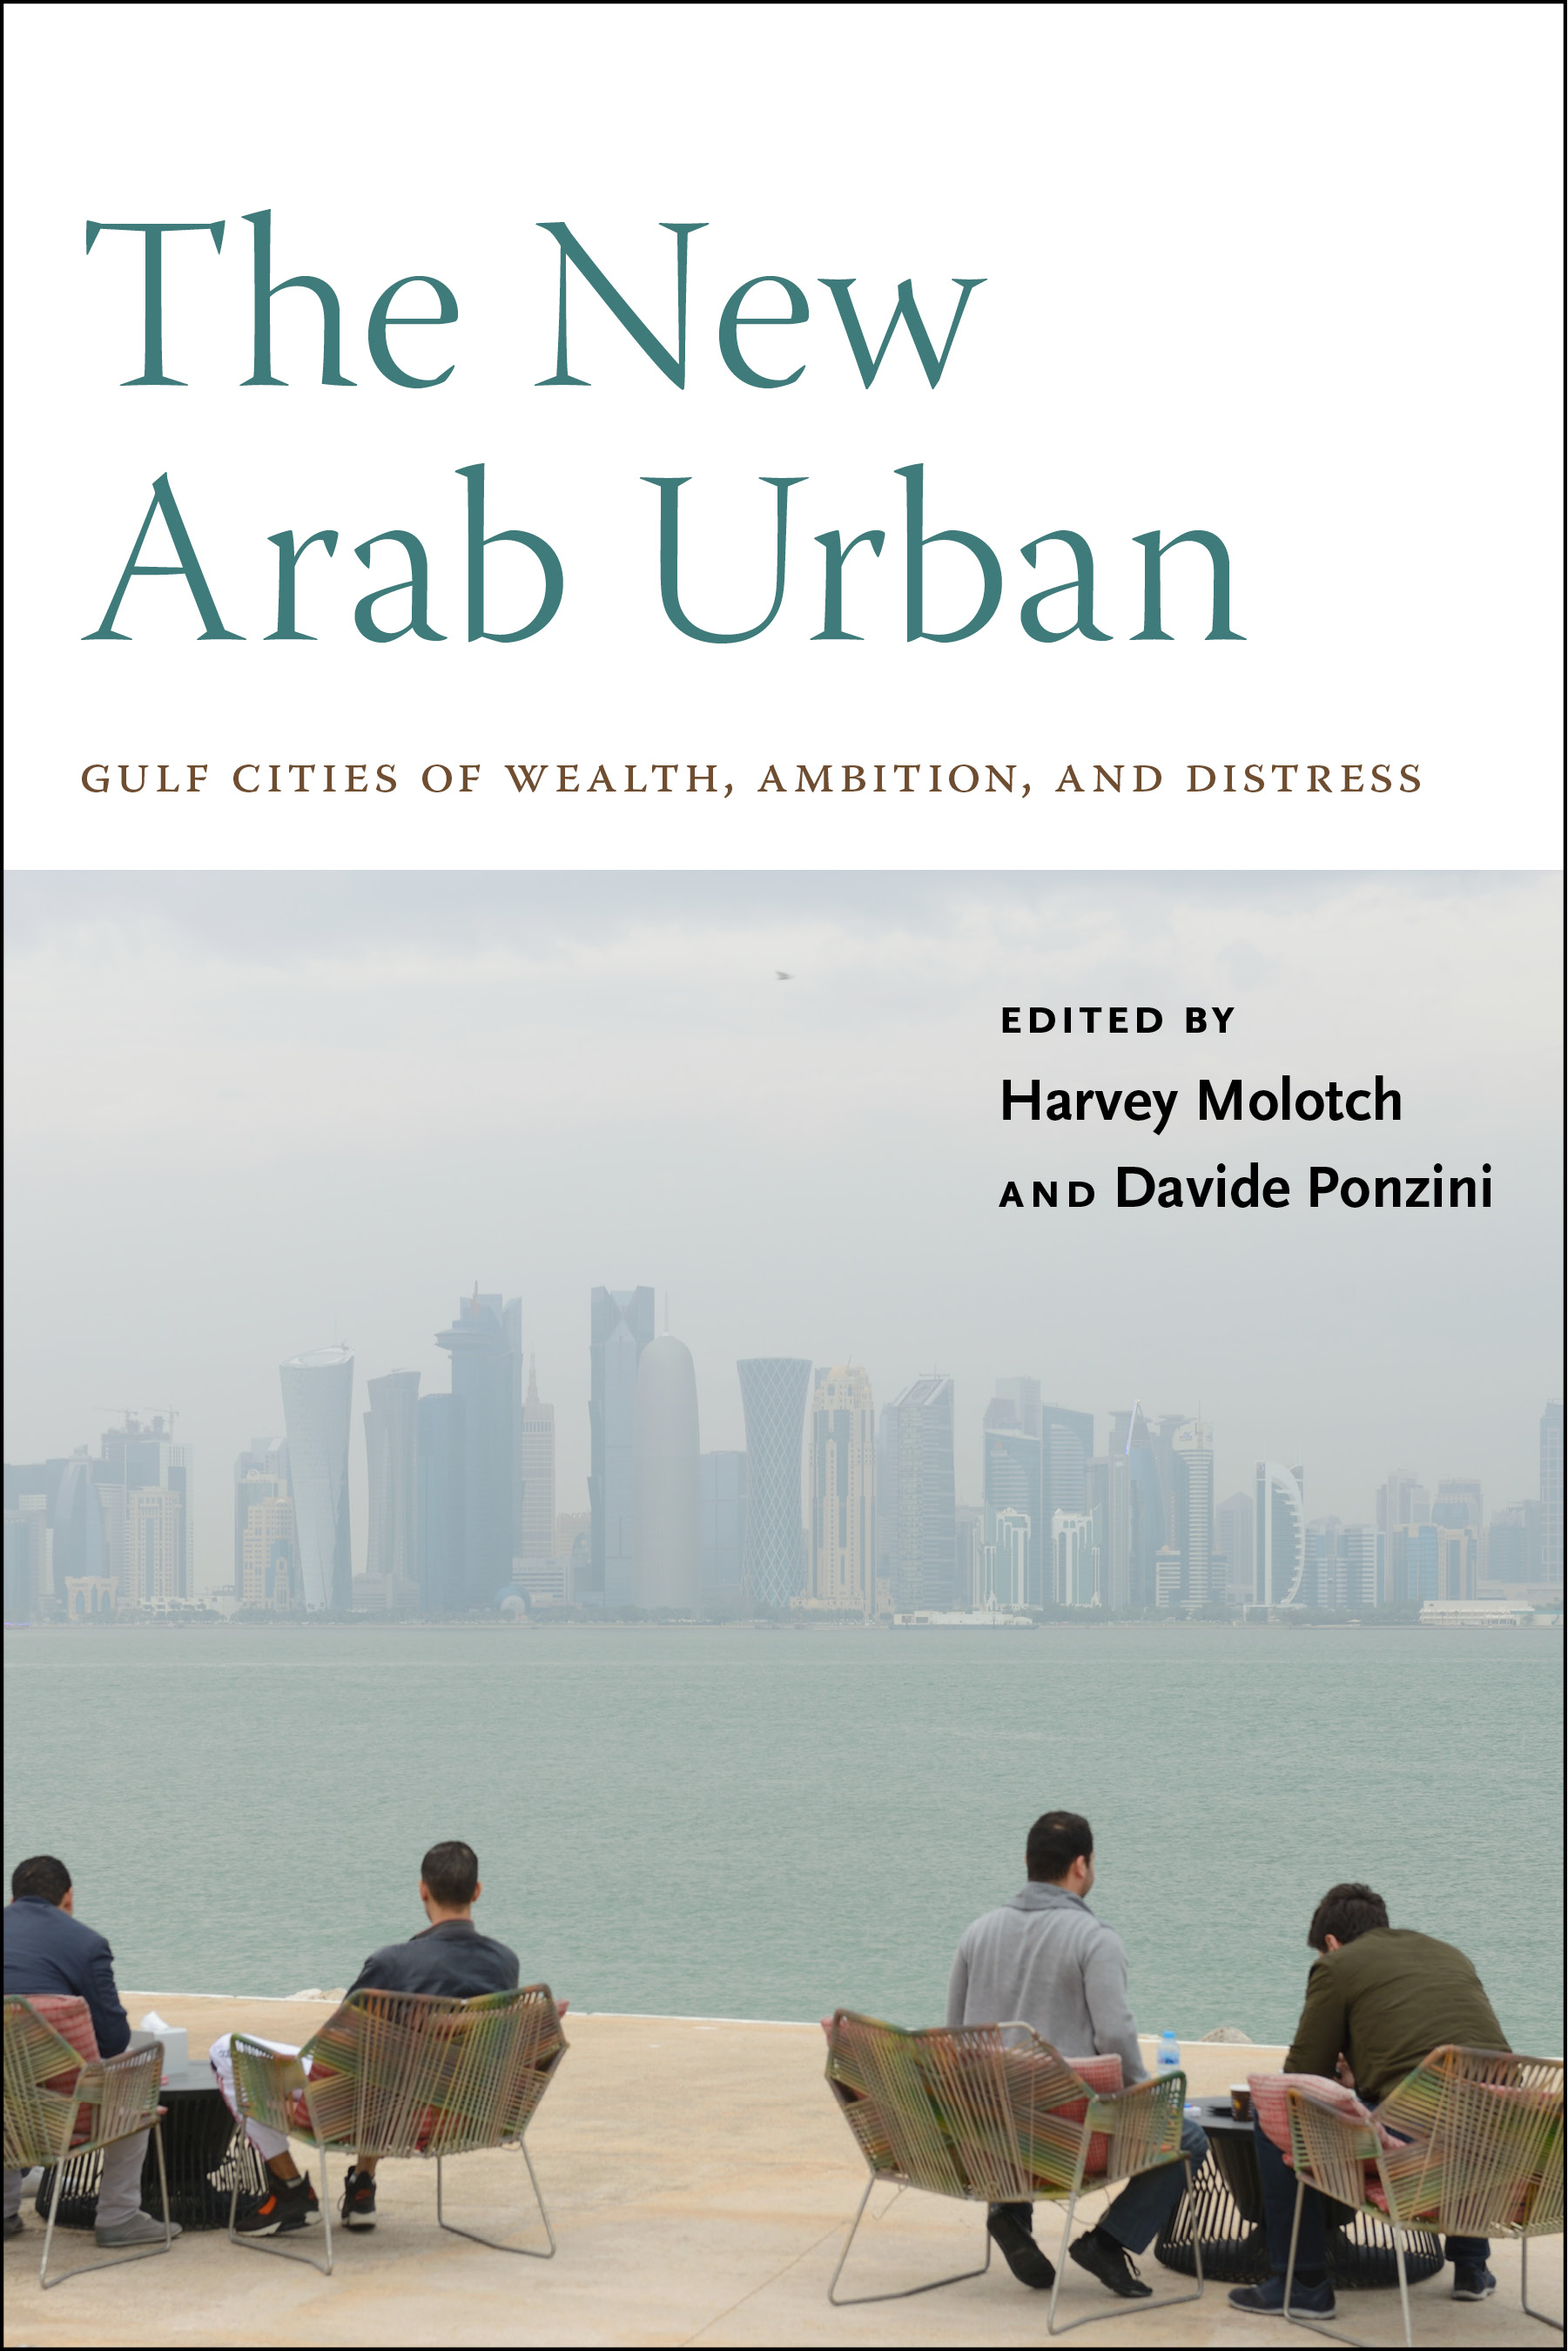 The New Arab Urban